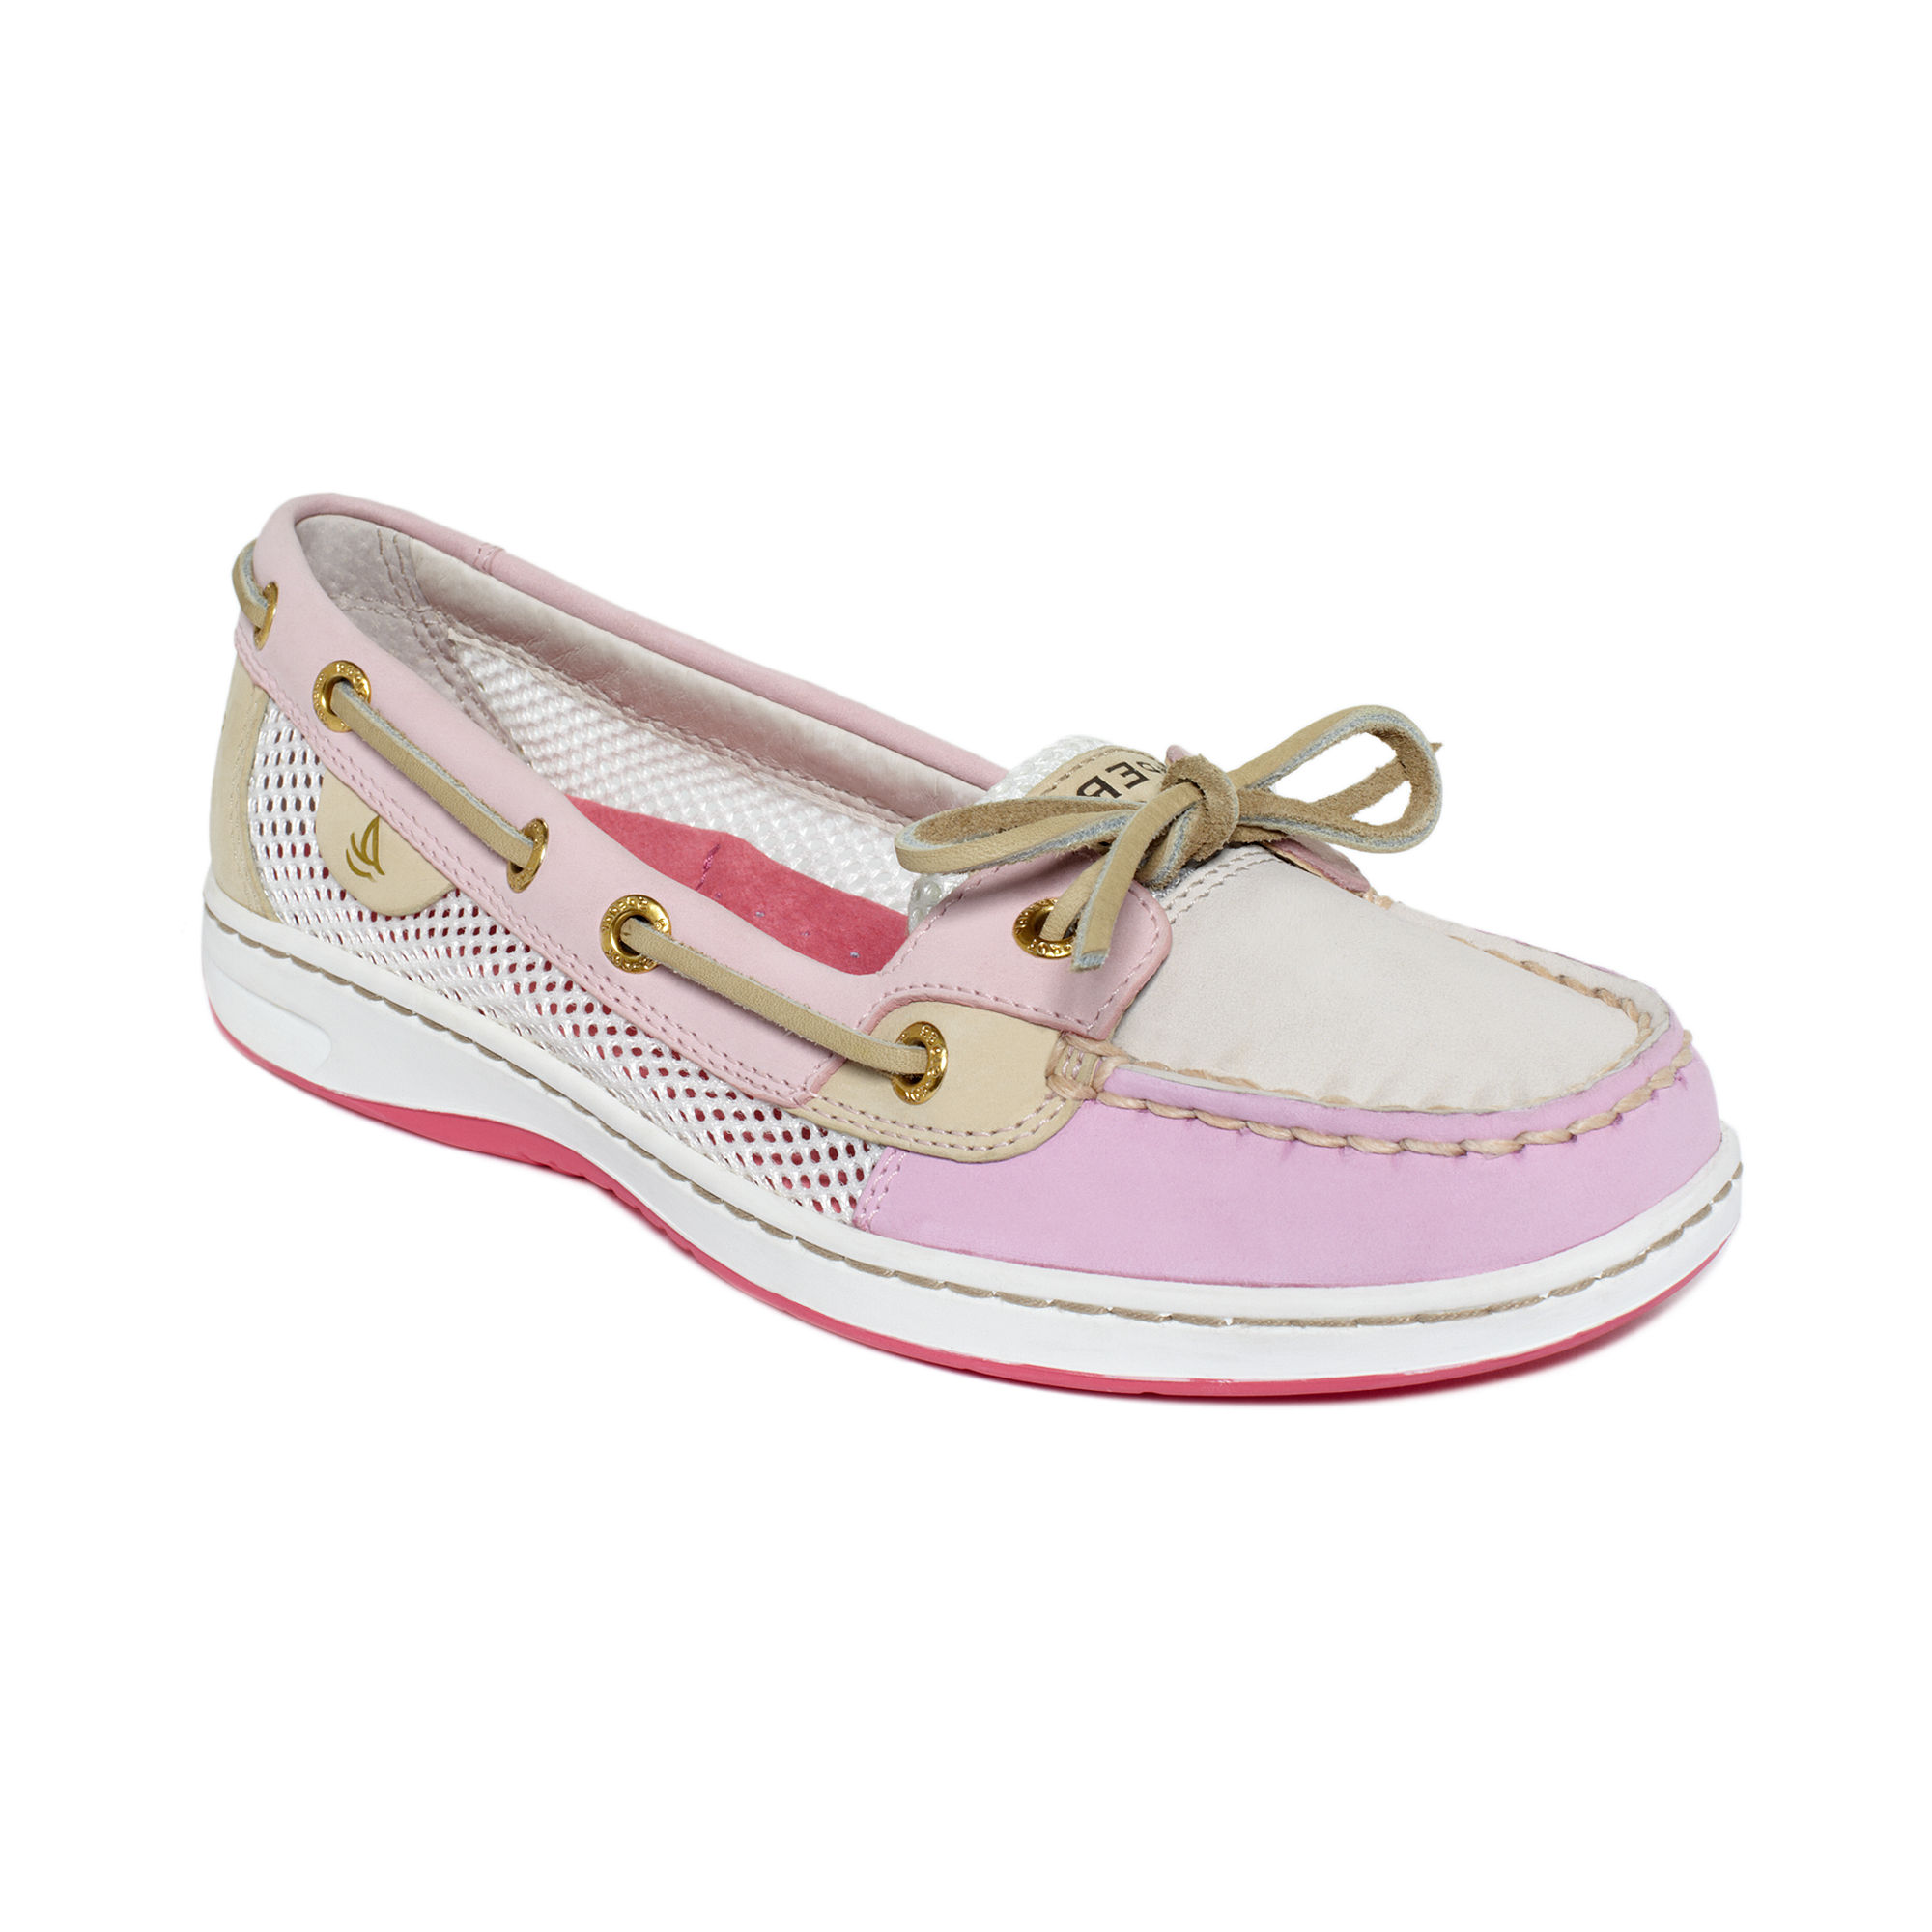 Sperry Top-sider Angelfish Boat Shoes in Pink (Rose Open Mesh